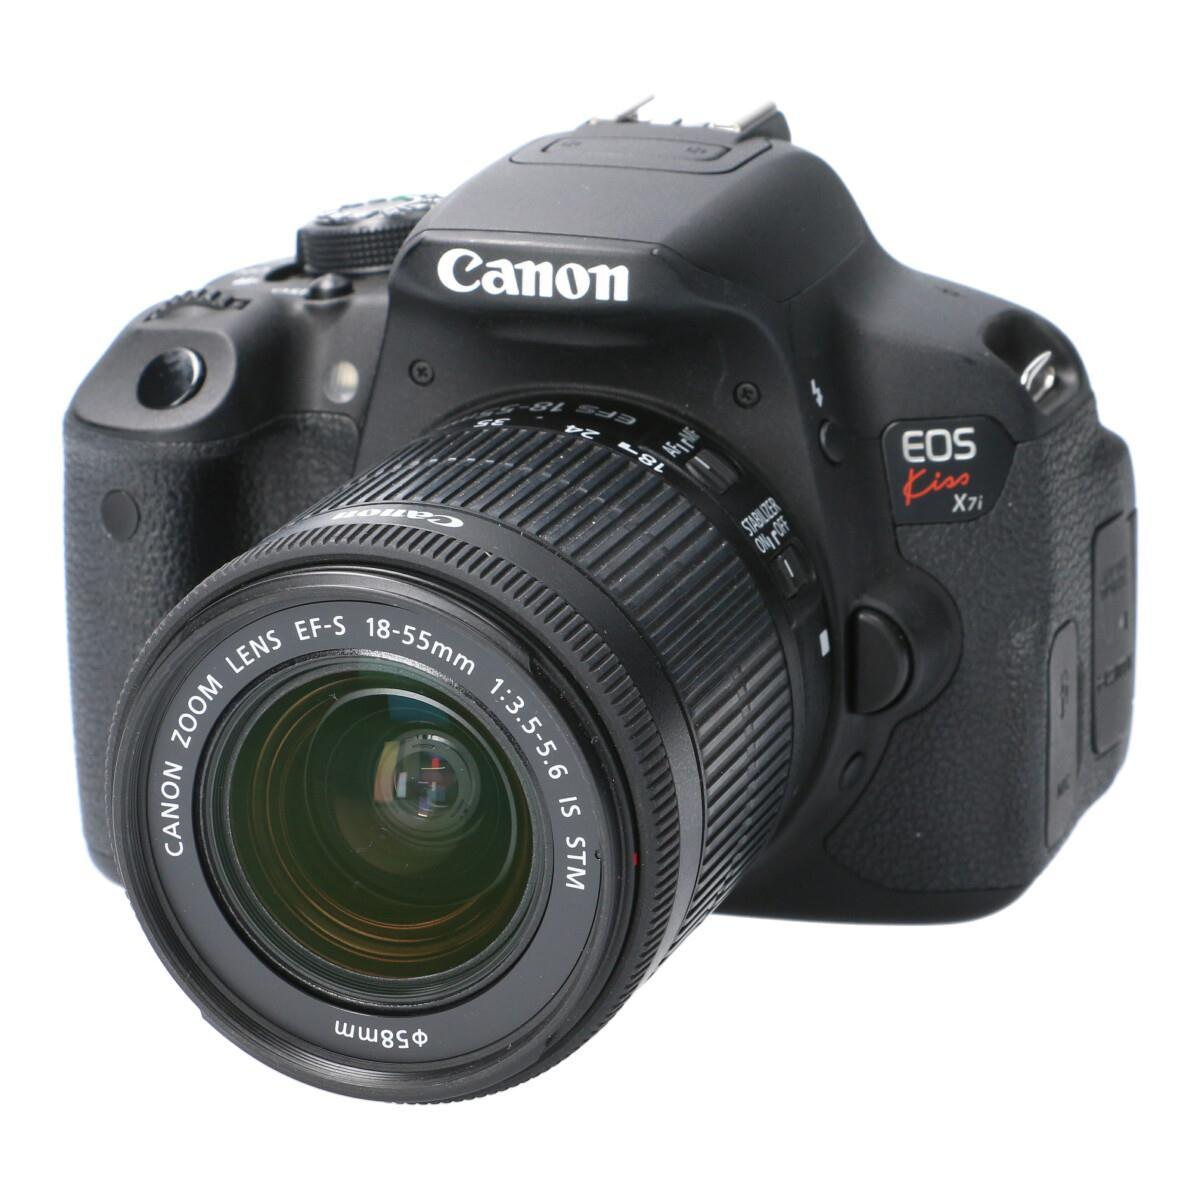 CANON EOS KISS X7I18-55IS STM【中古】